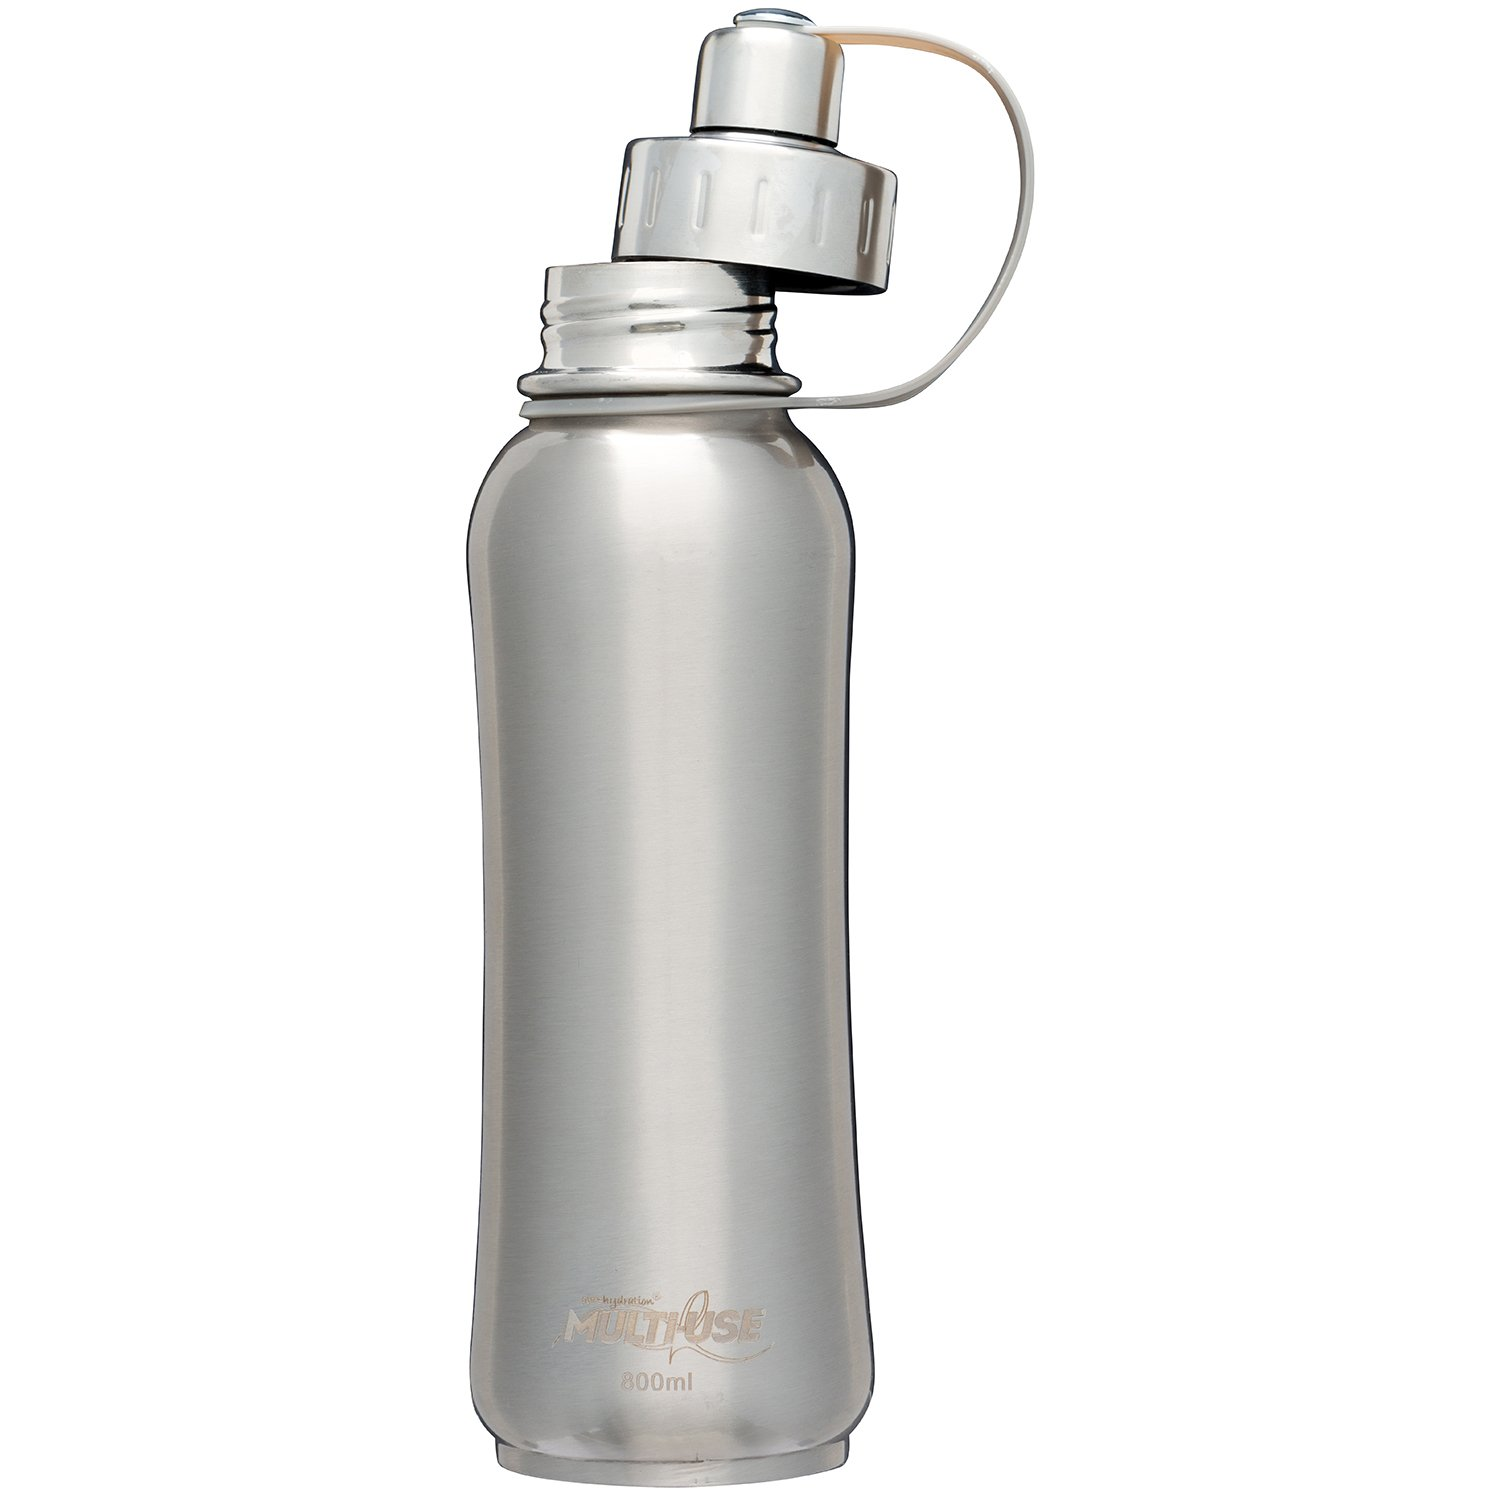 PureHydration Multi-Use Stainless Steel Tri-Ply Insulated Bottle with Infuser Basket (Whispering Wood, 800ml) by PureHydration Multi-Use (Image #3)